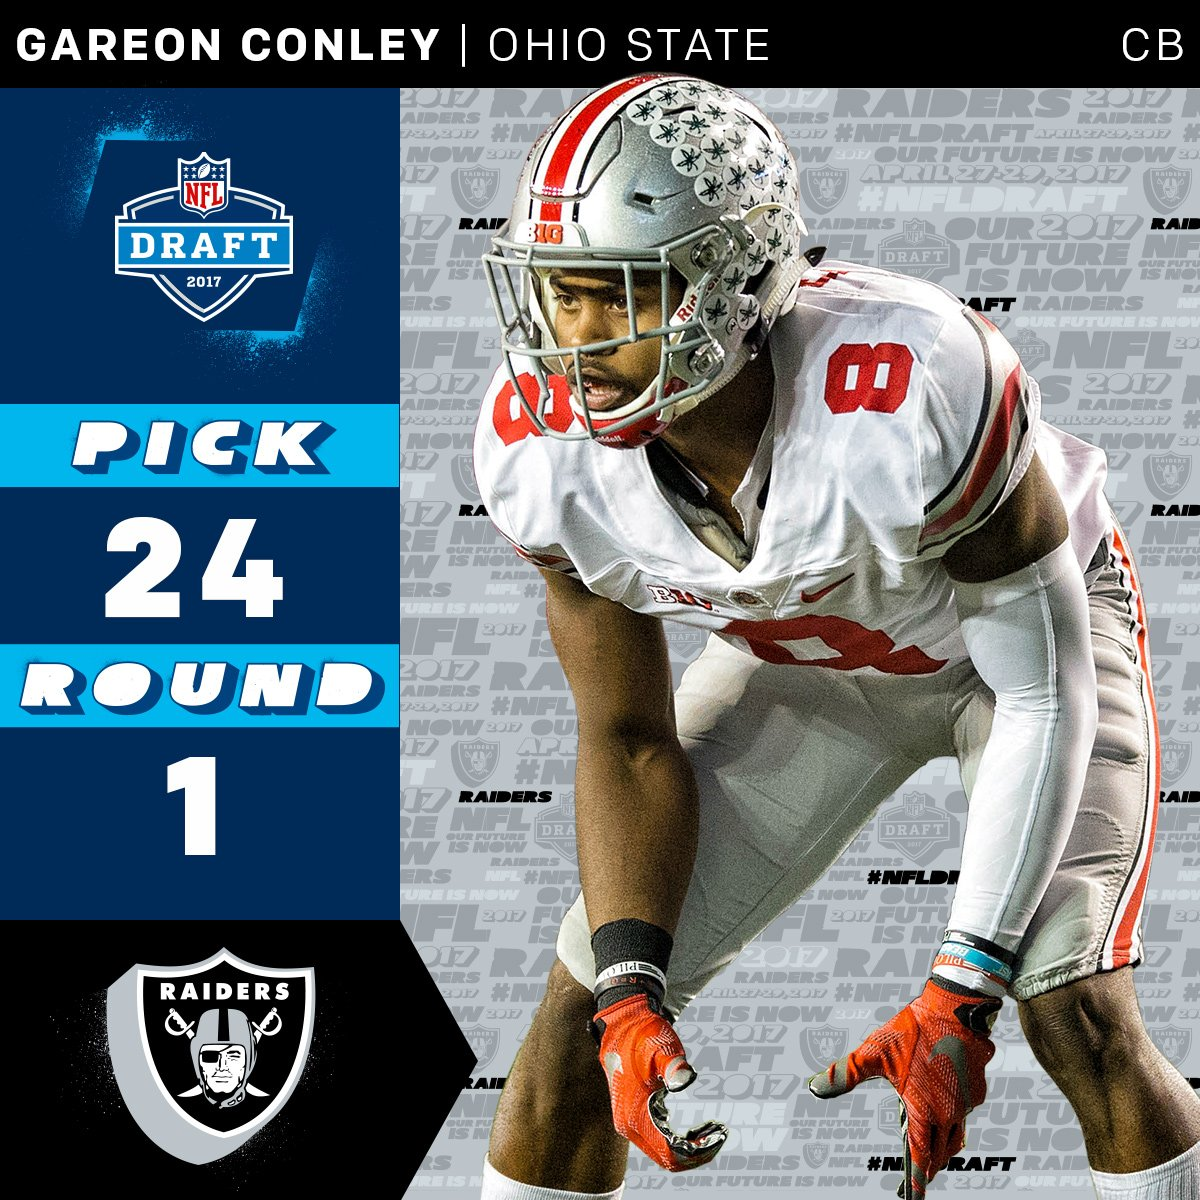 The @RAIDERS select @OhioStateFB CB @_gconley8 with the 24th overall p...